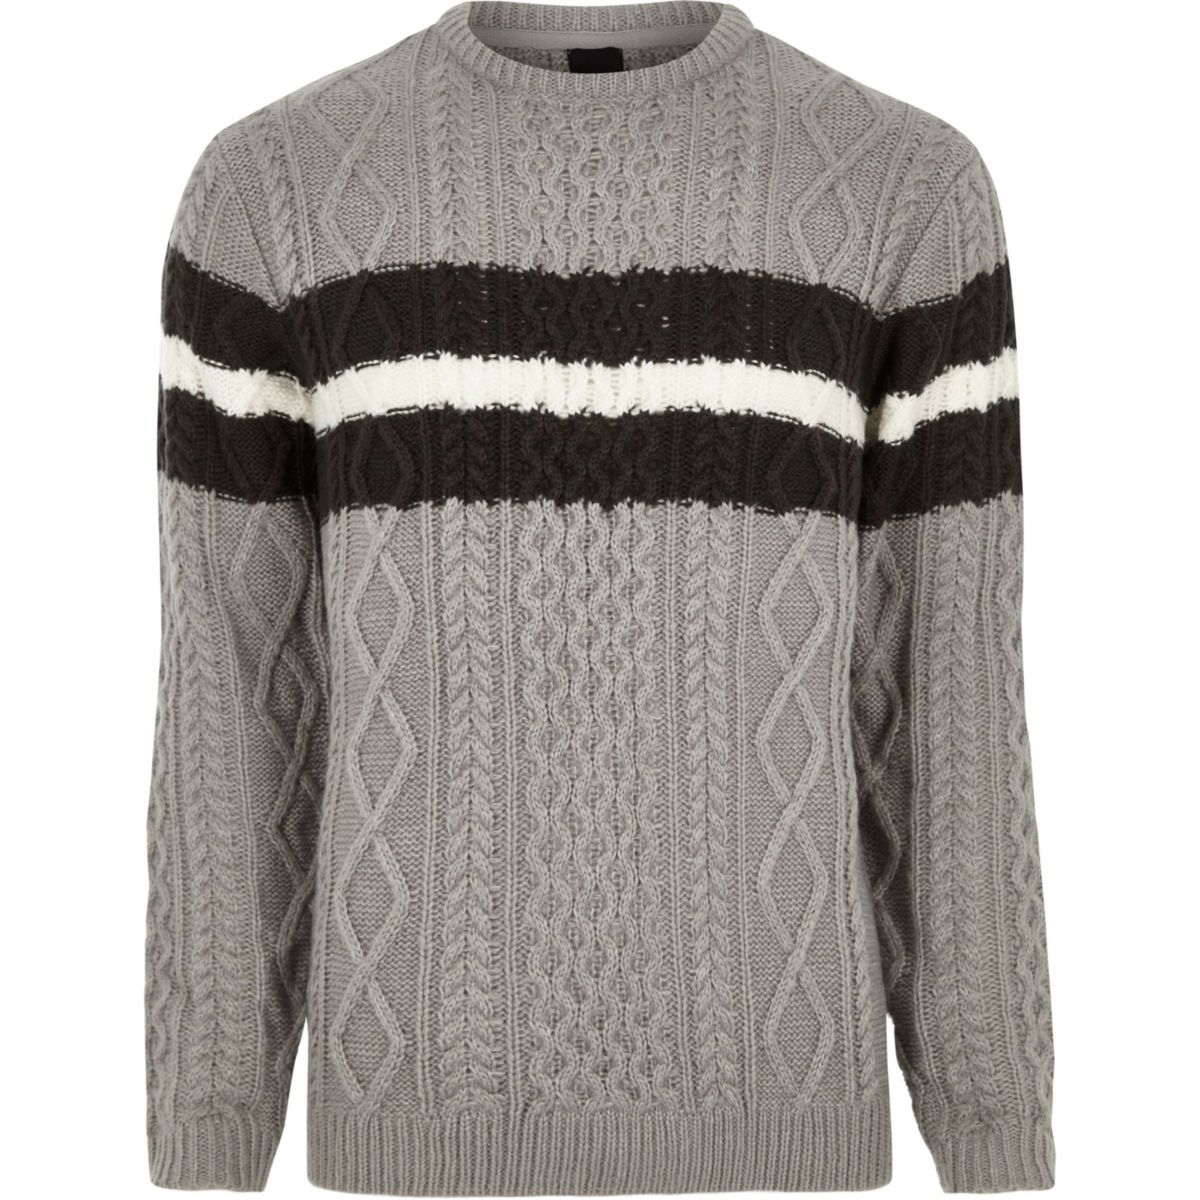 Big and Tall grey block cable knit sweater